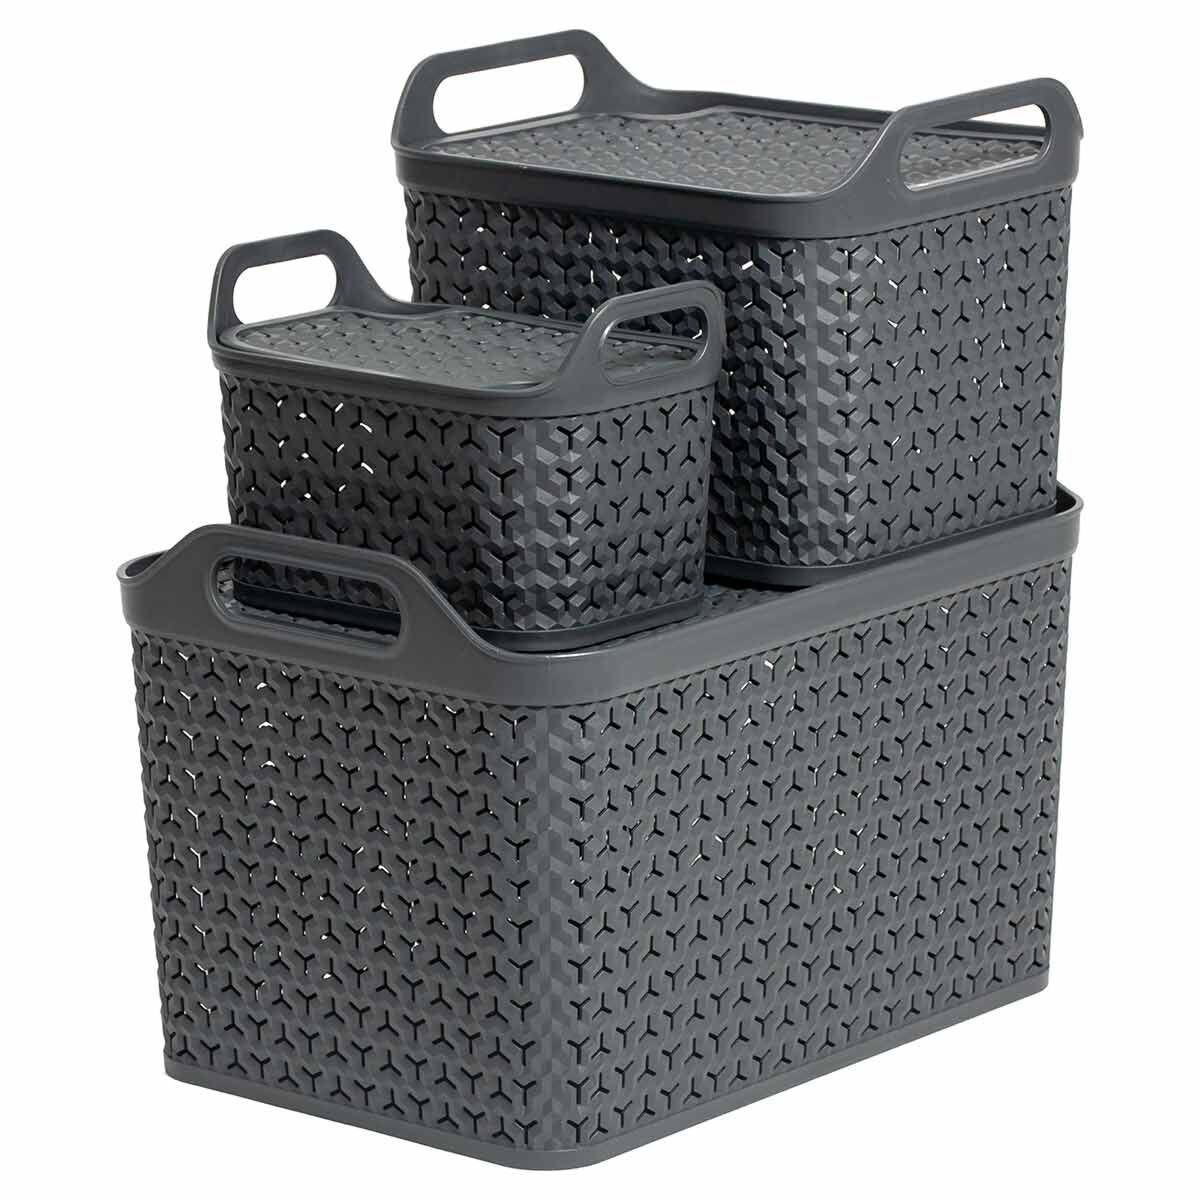 Strata Urban Store Baskets with Lid Set of 3 Charcoal